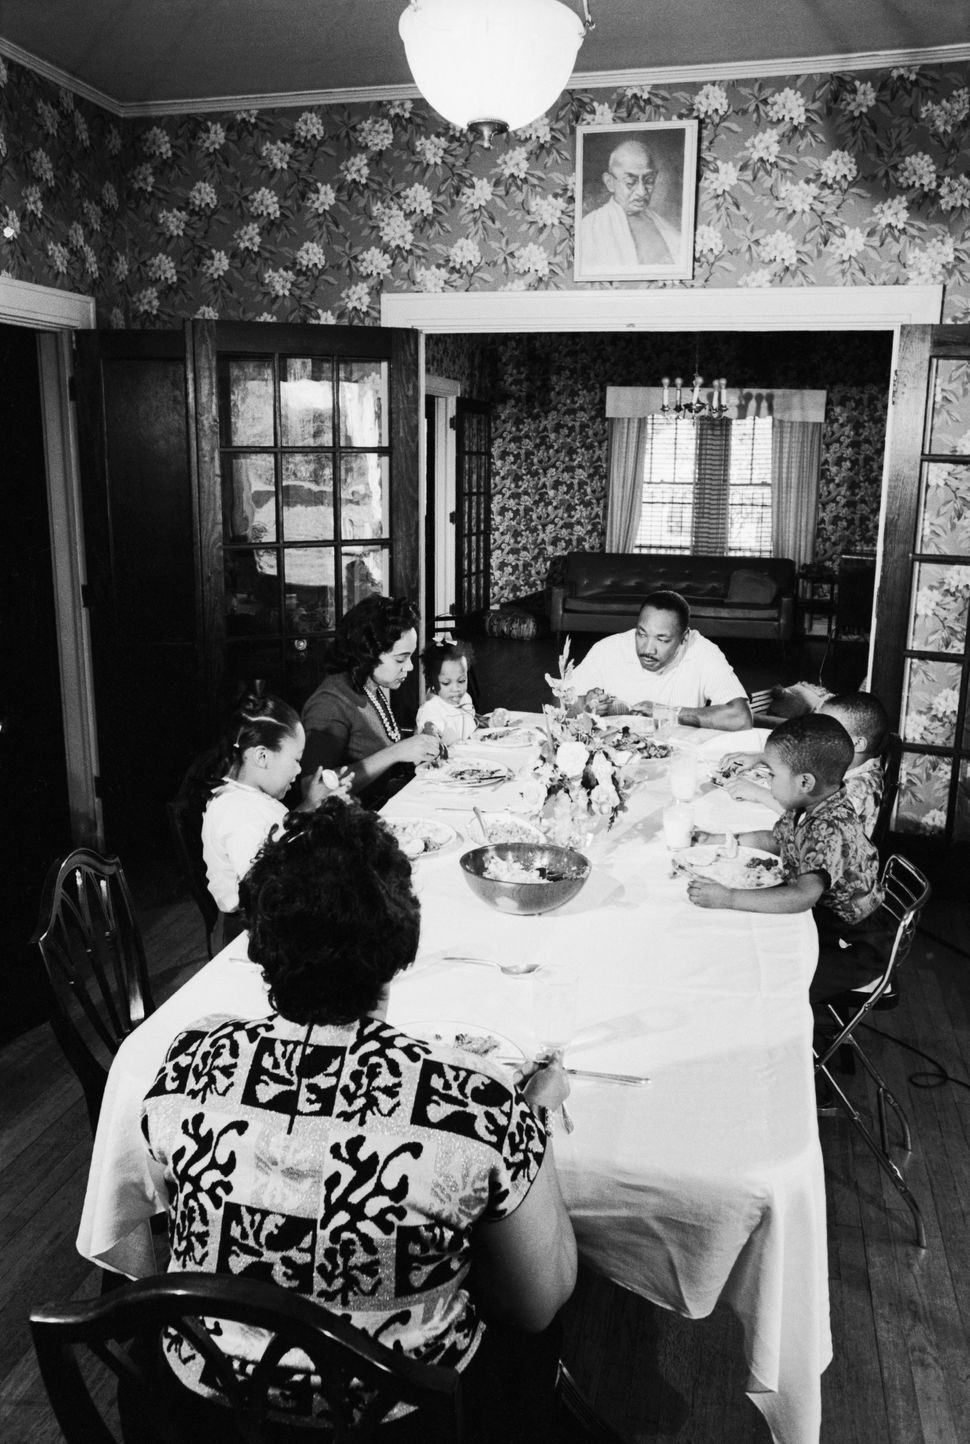 Martin Luther King Jr. and his family eat their Sunday dinner after church on November 8, 1964.